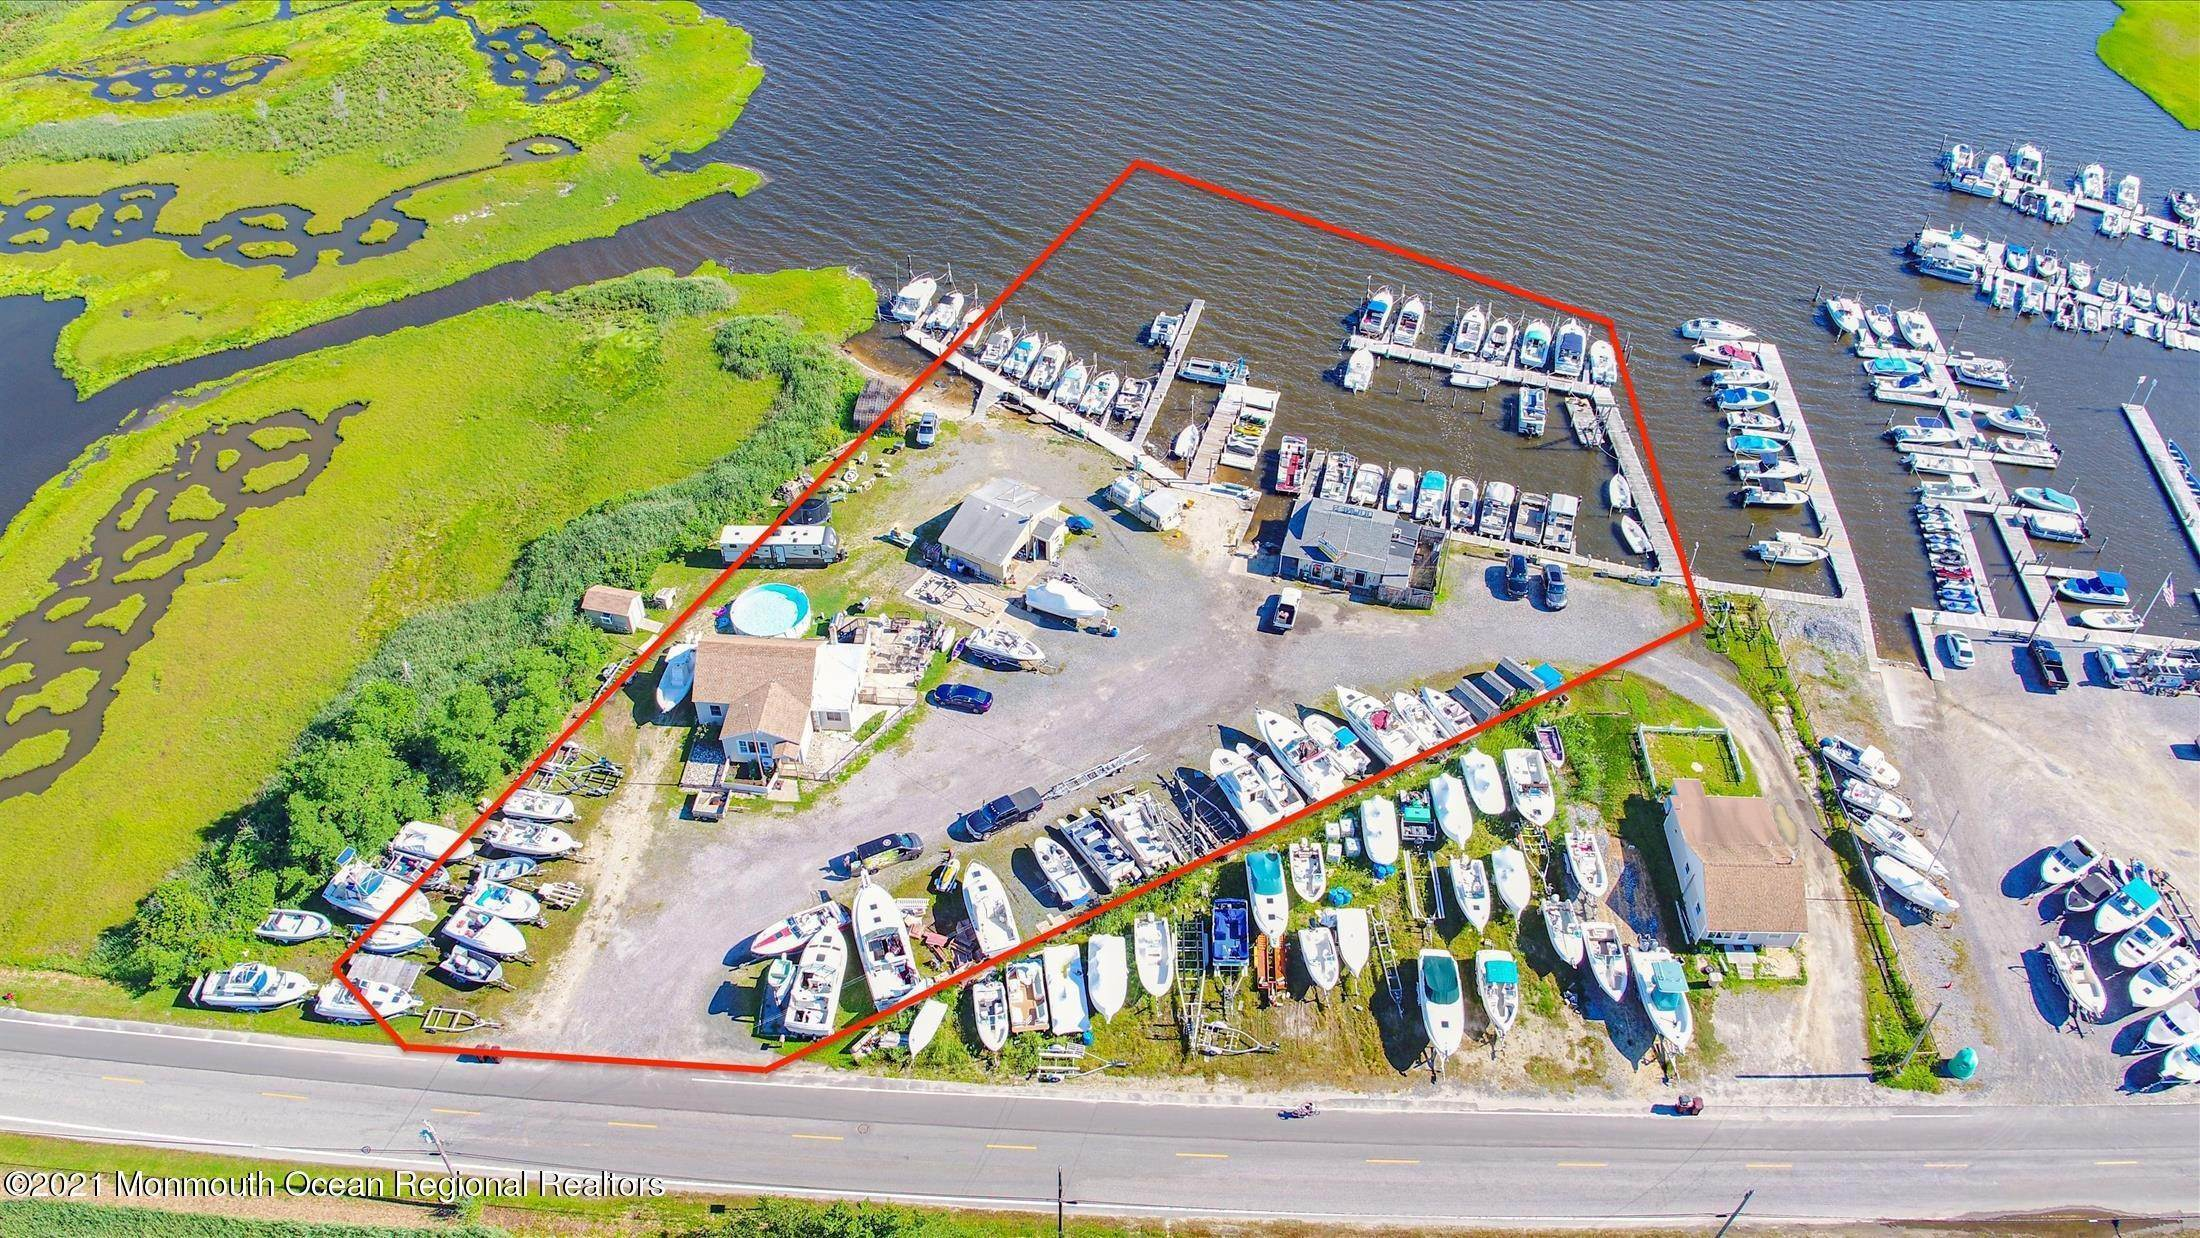 Property for Sale at 287 Brennan Concourse Bayville, New Jersey 08721 United States